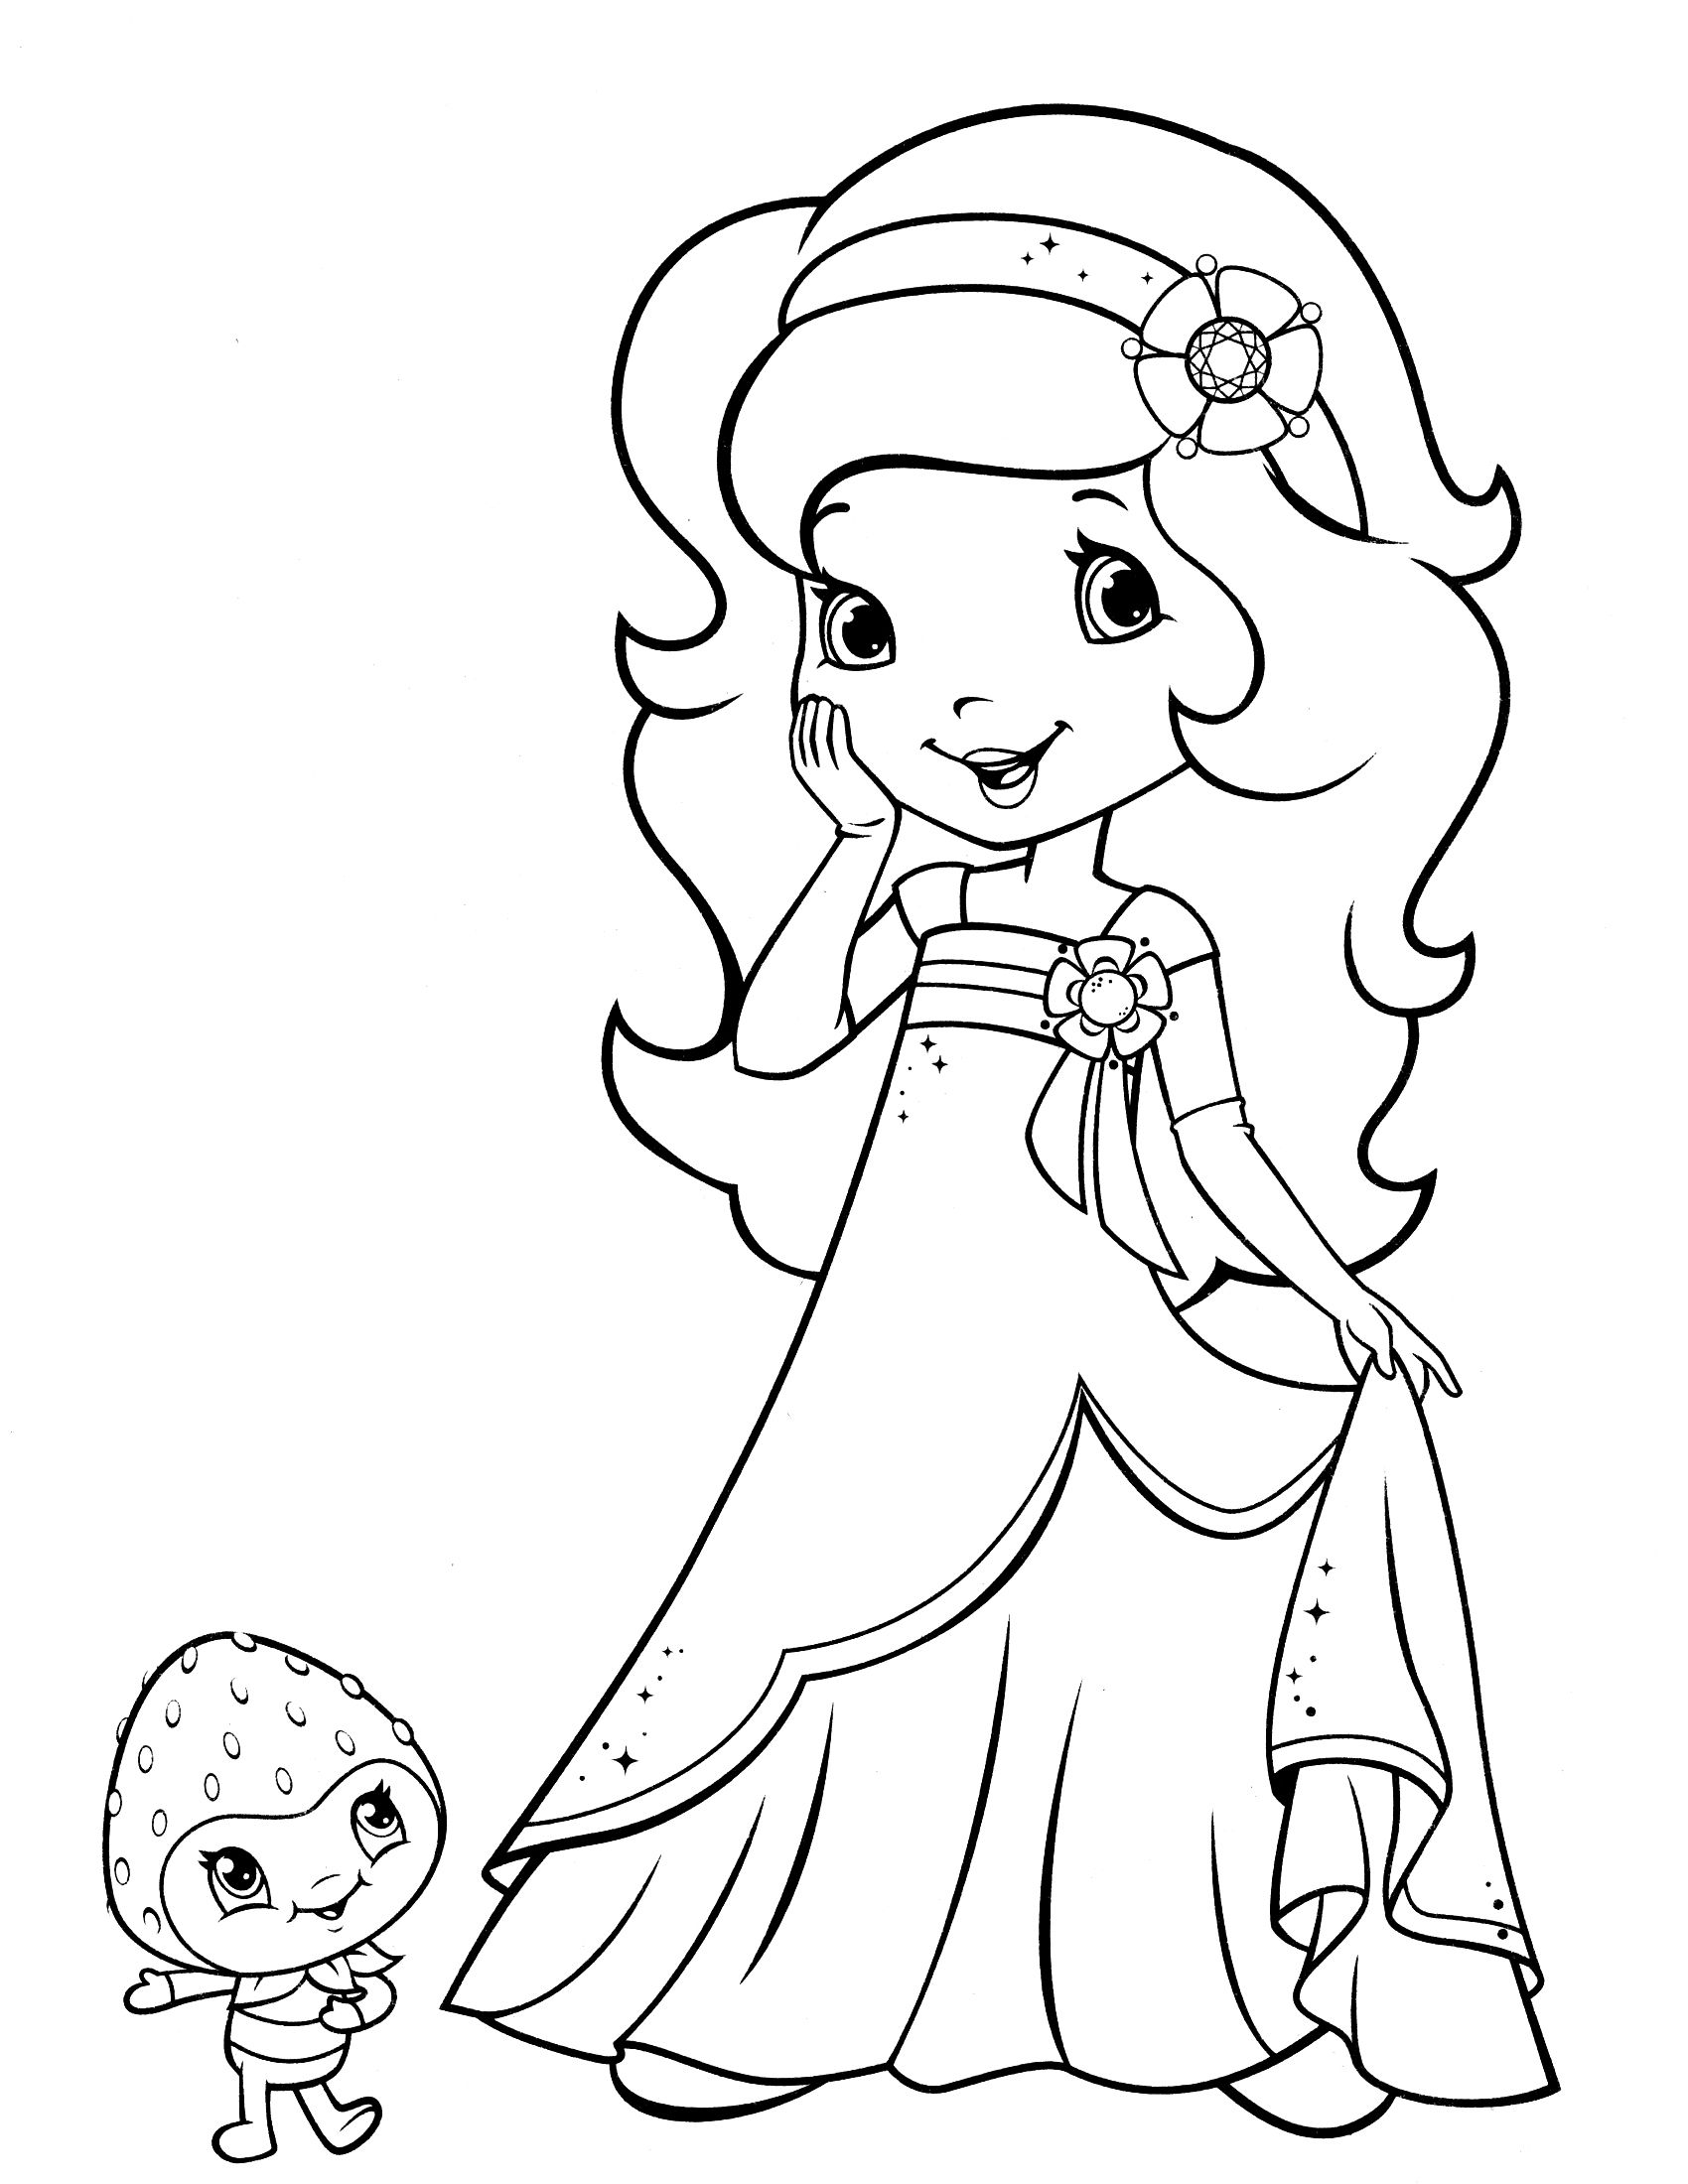 fresa para colorear Shortcake | Coloring Pages | Pinterest ...